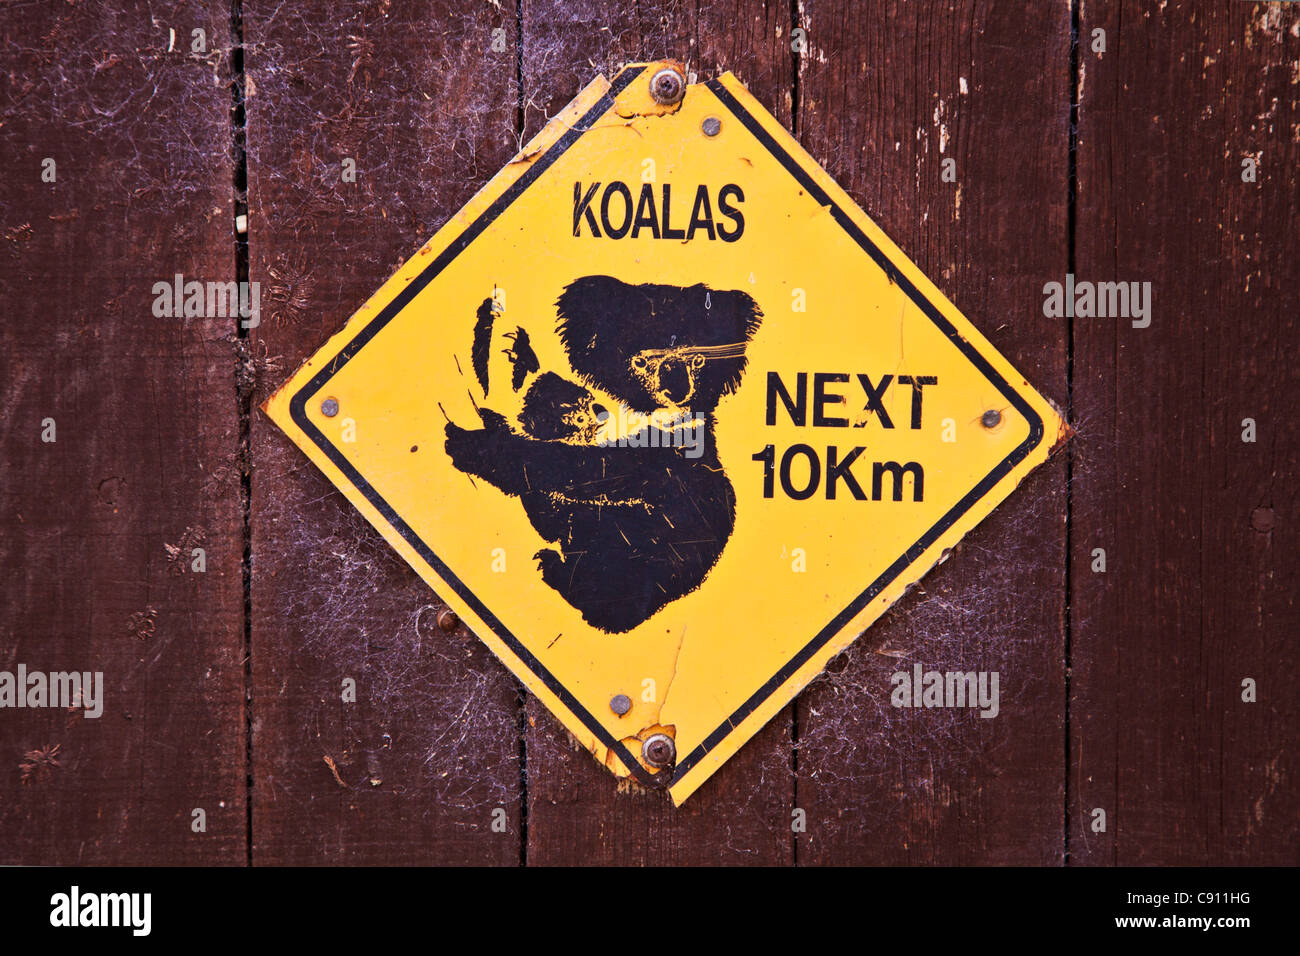 Koala bear warning sign from Australia screwed to a wooden fence in England, UK - Stock Image